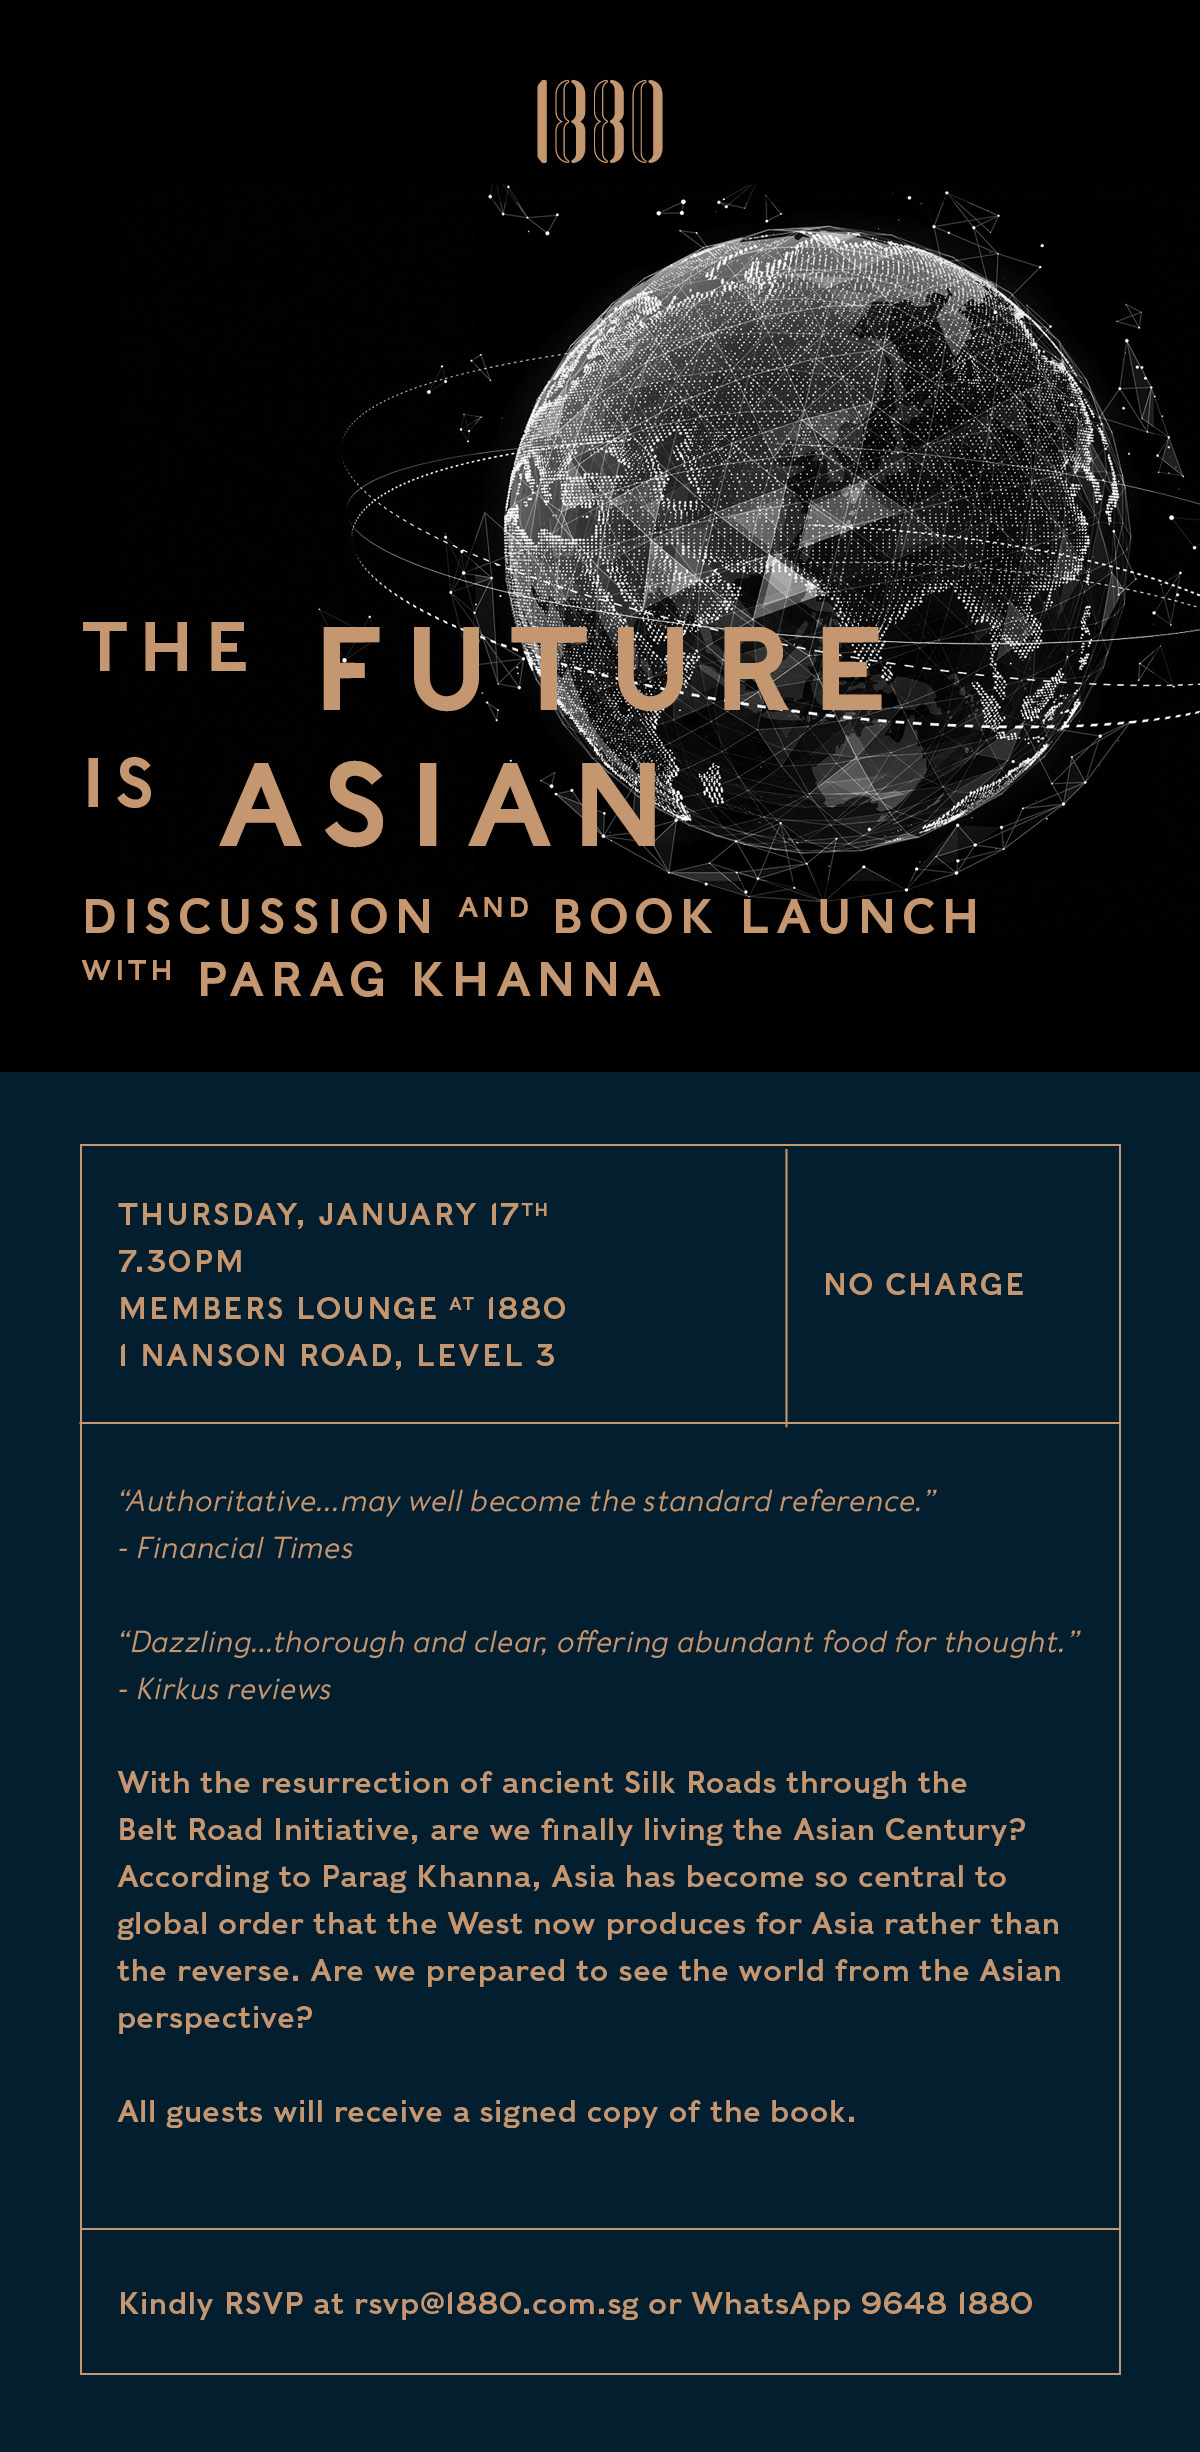 The Future Is Asian: Discussion and Book Launch with Parag Khanna